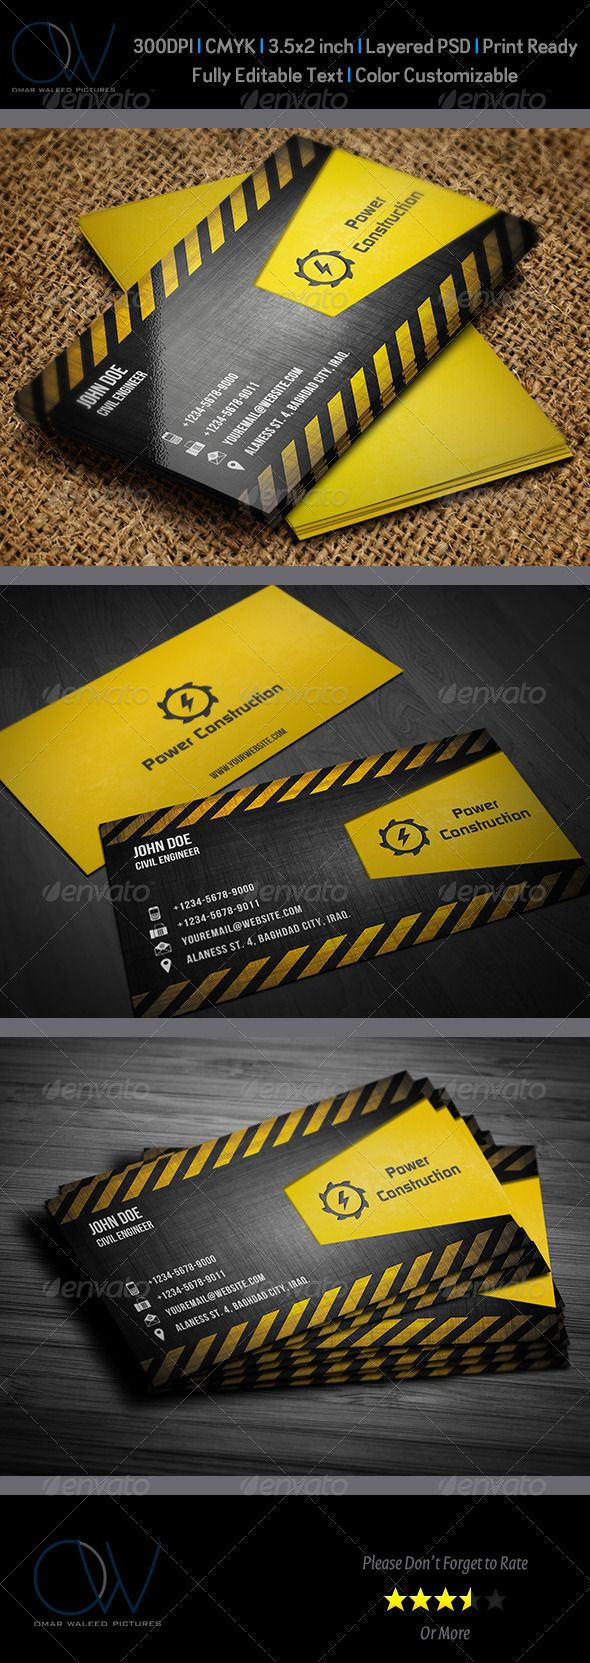 Best 25 3d business card ideas on pinterest embossed business best 25 3d business card ideas on pinterest embossed business cards visit cards and best visiting card designs magicingreecefo Gallery